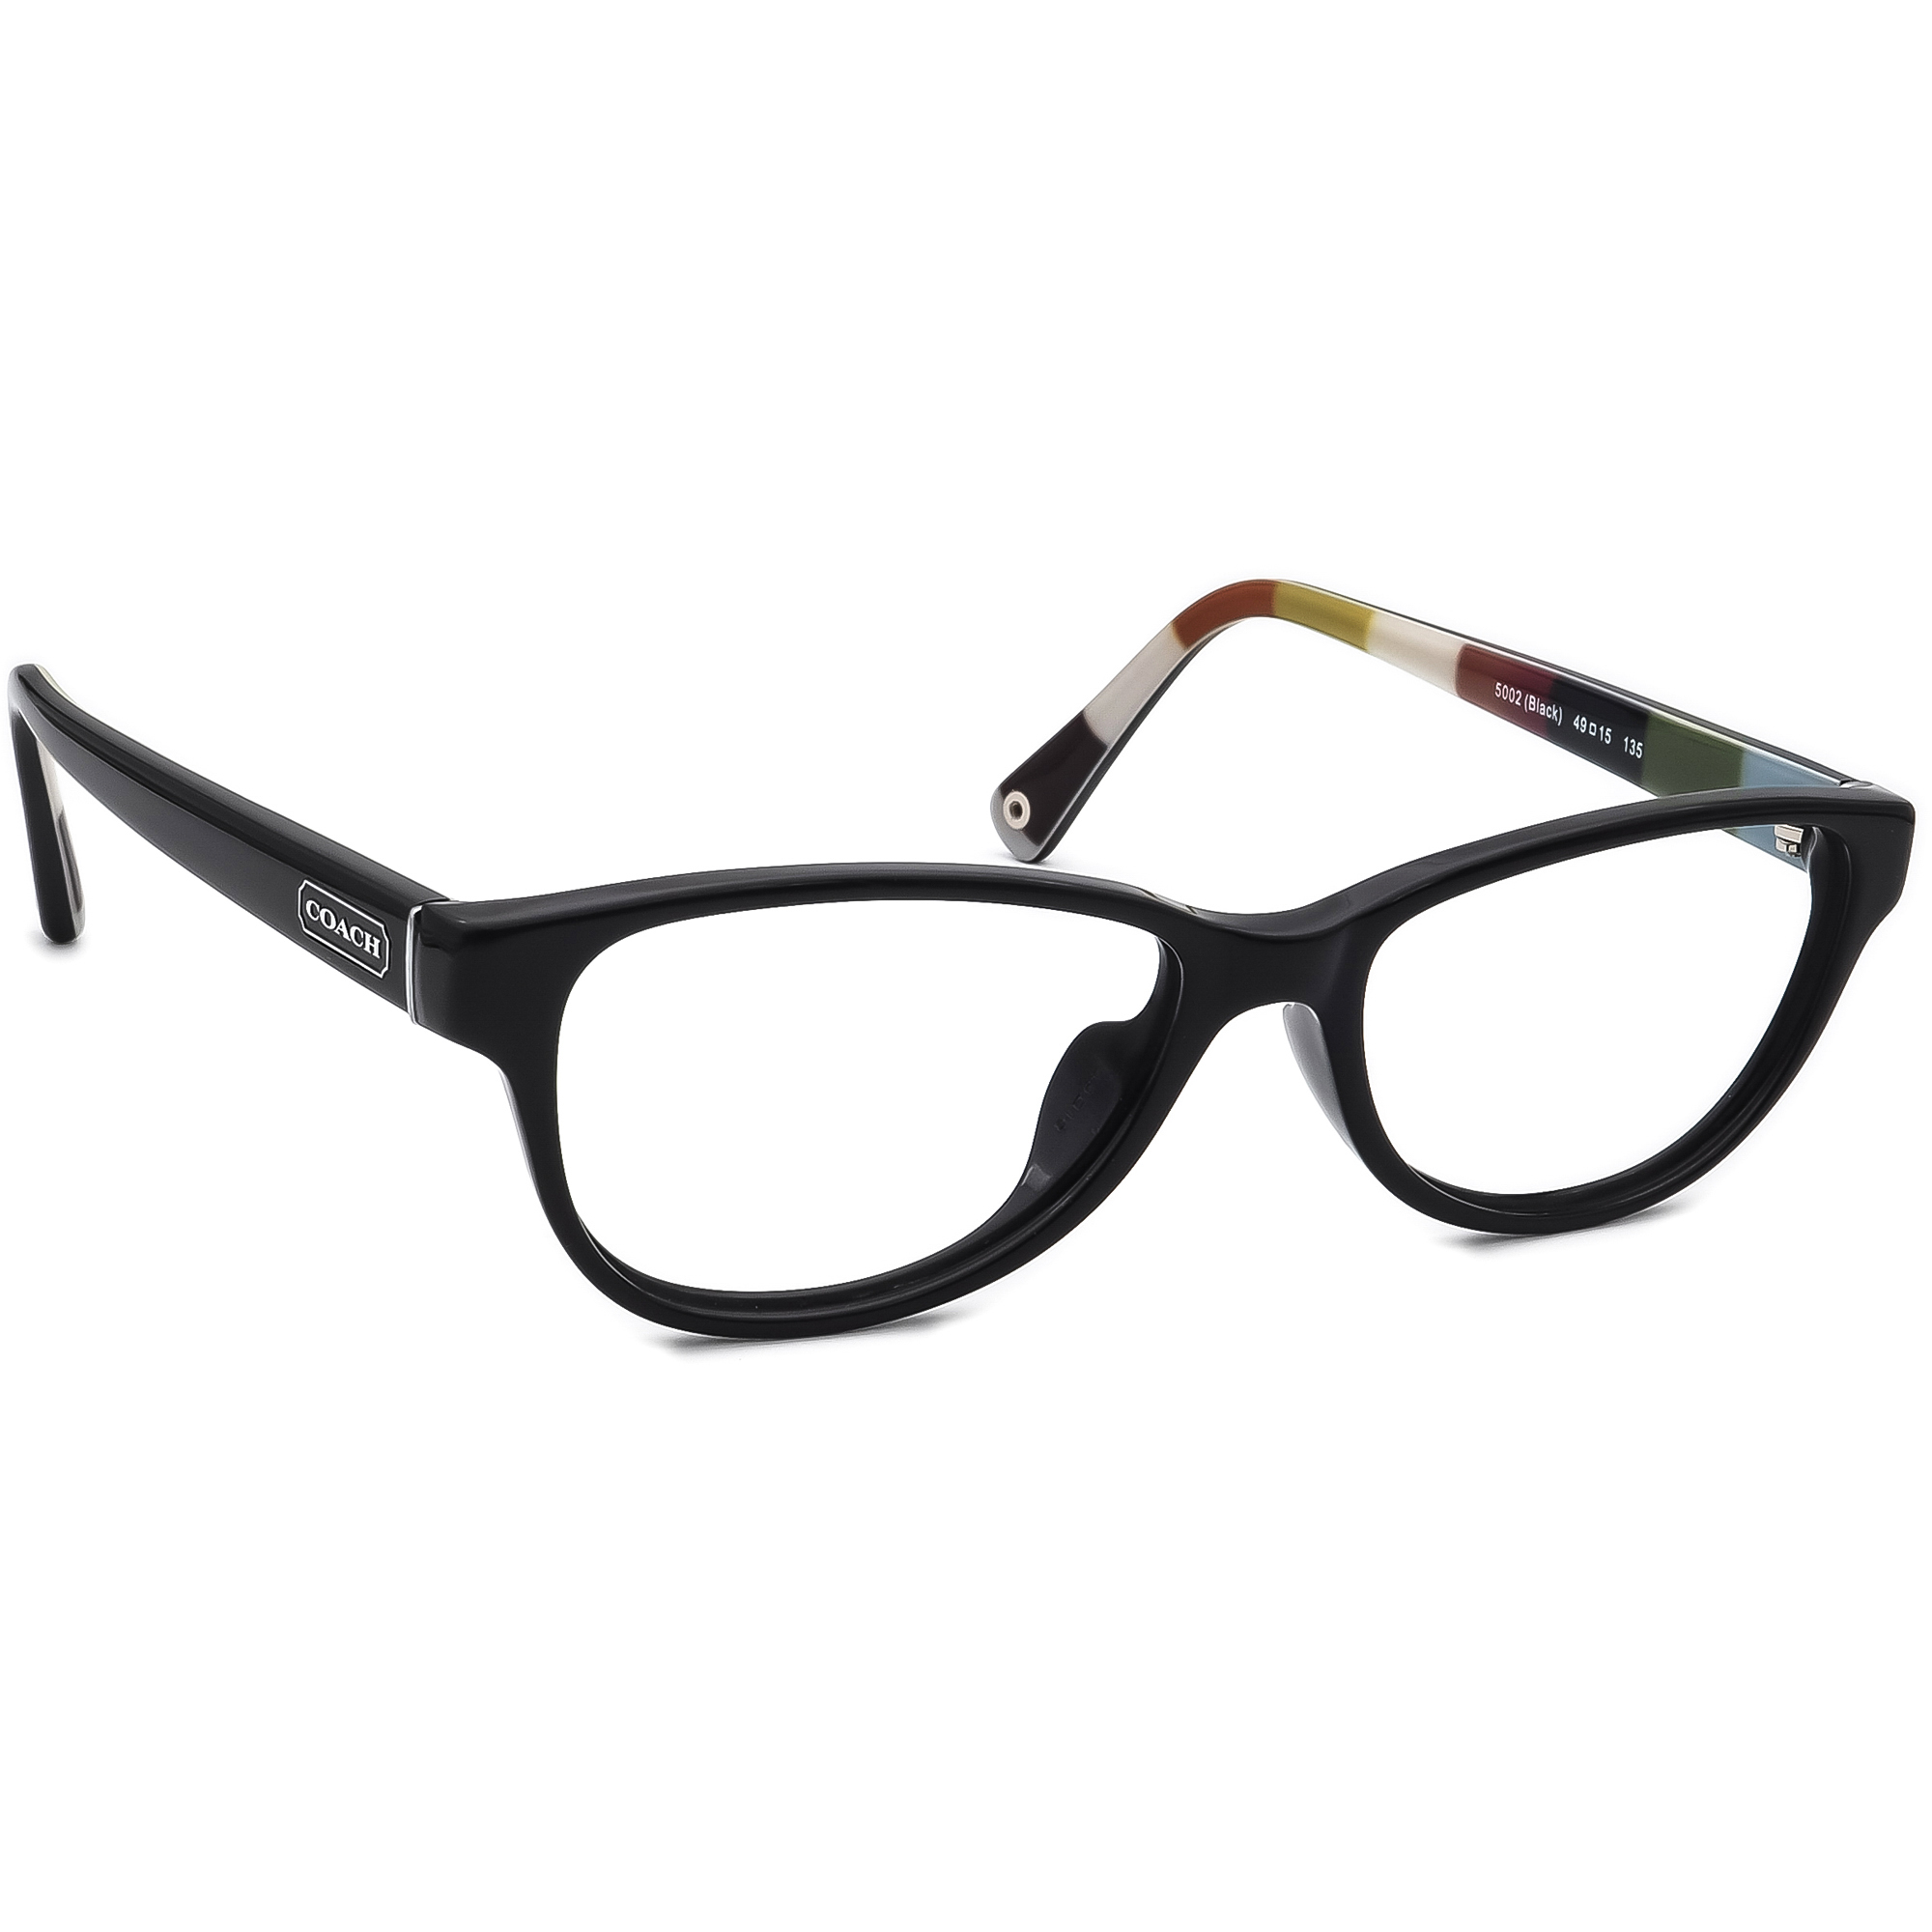 Coach Eyeglasses HC 6012 Dakota 5002 Black Full Rim Frame 49[]15 135